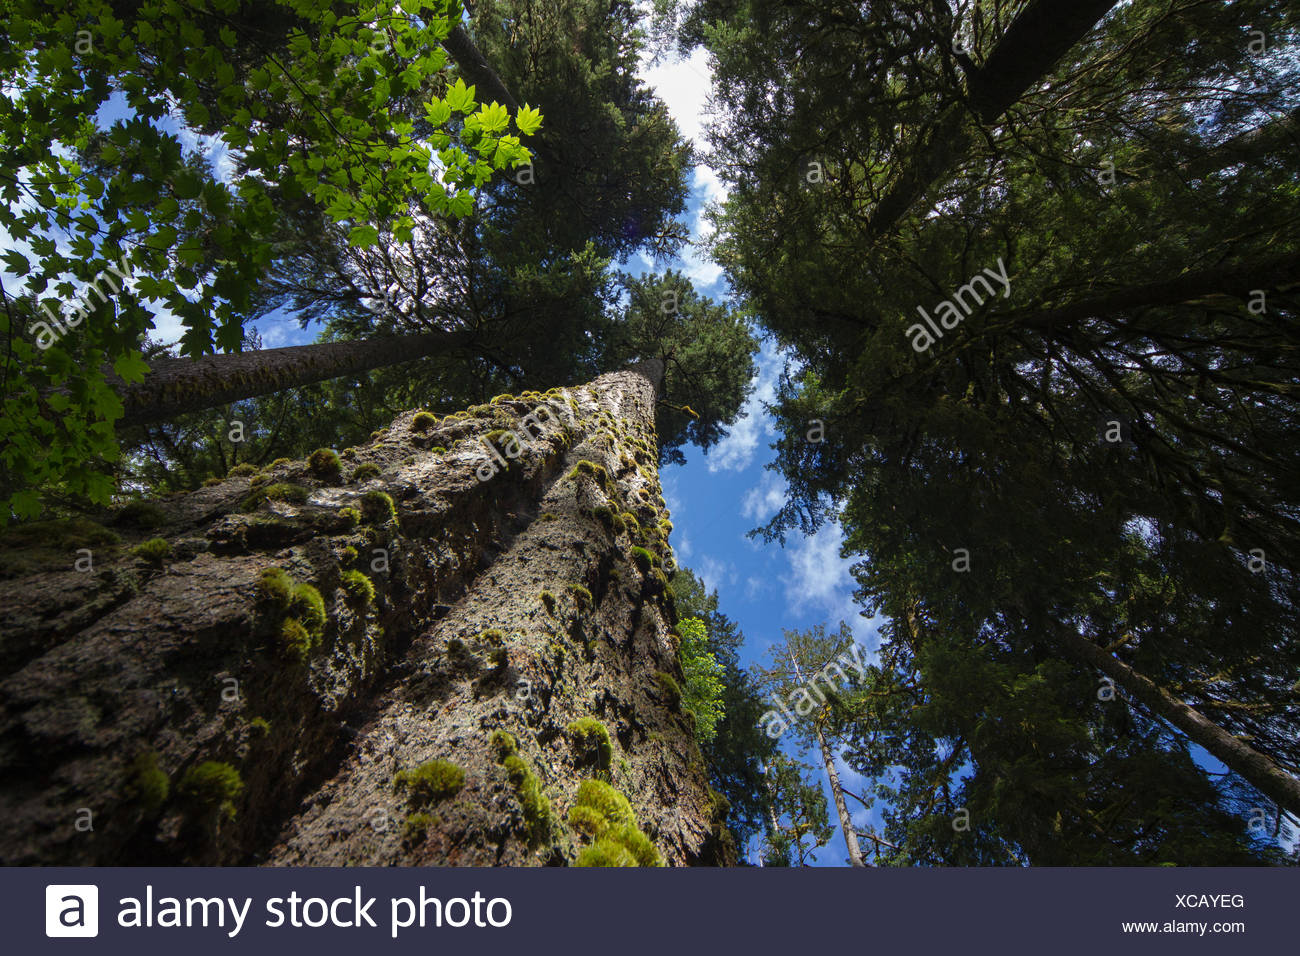 Low angle view of trees in the Hoh Rainforest, Hall of Mosses Trail, Olympic National Park, Jefferson County, Washington, USA, J - Stock Image